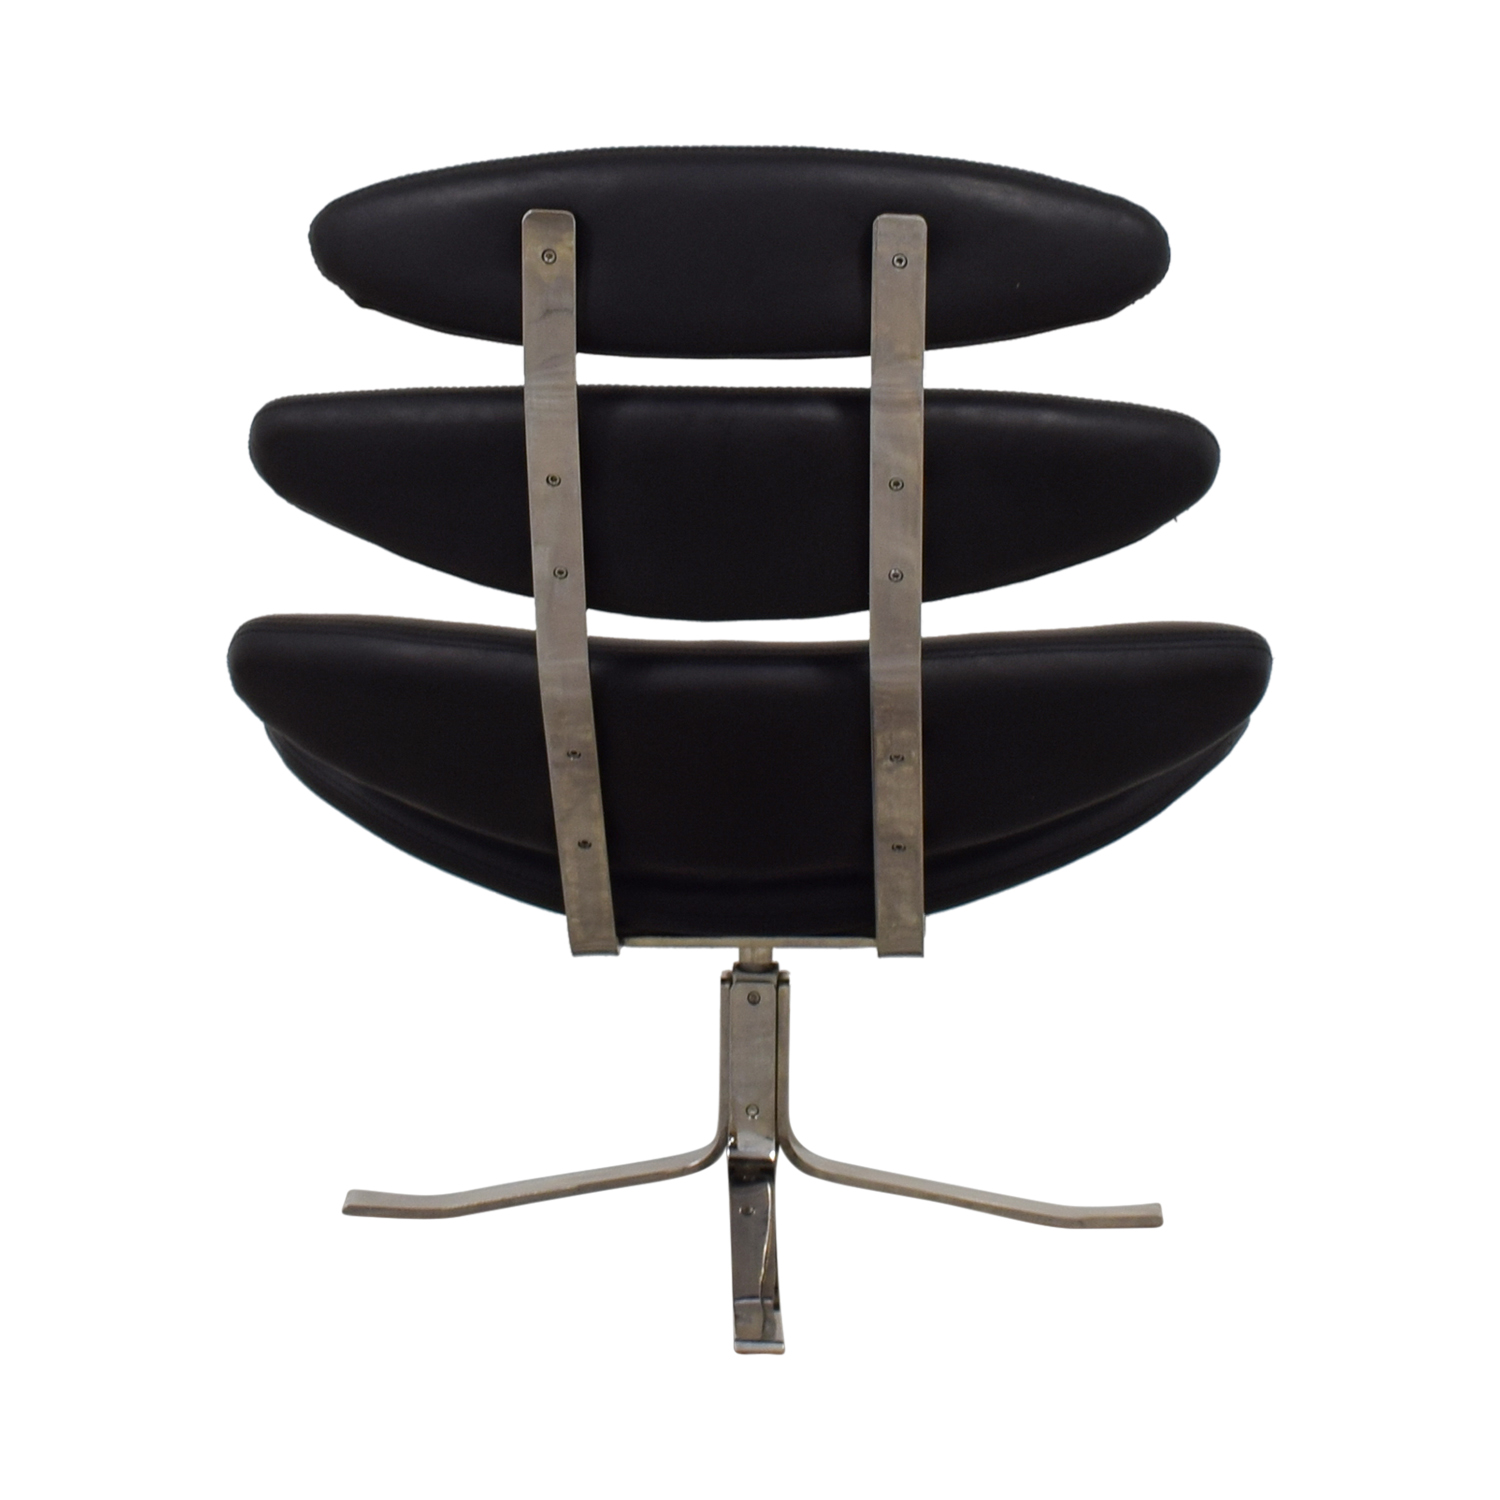 buy Crate & Barrel Black Leather Modern Accent Chair Crate & Barrel